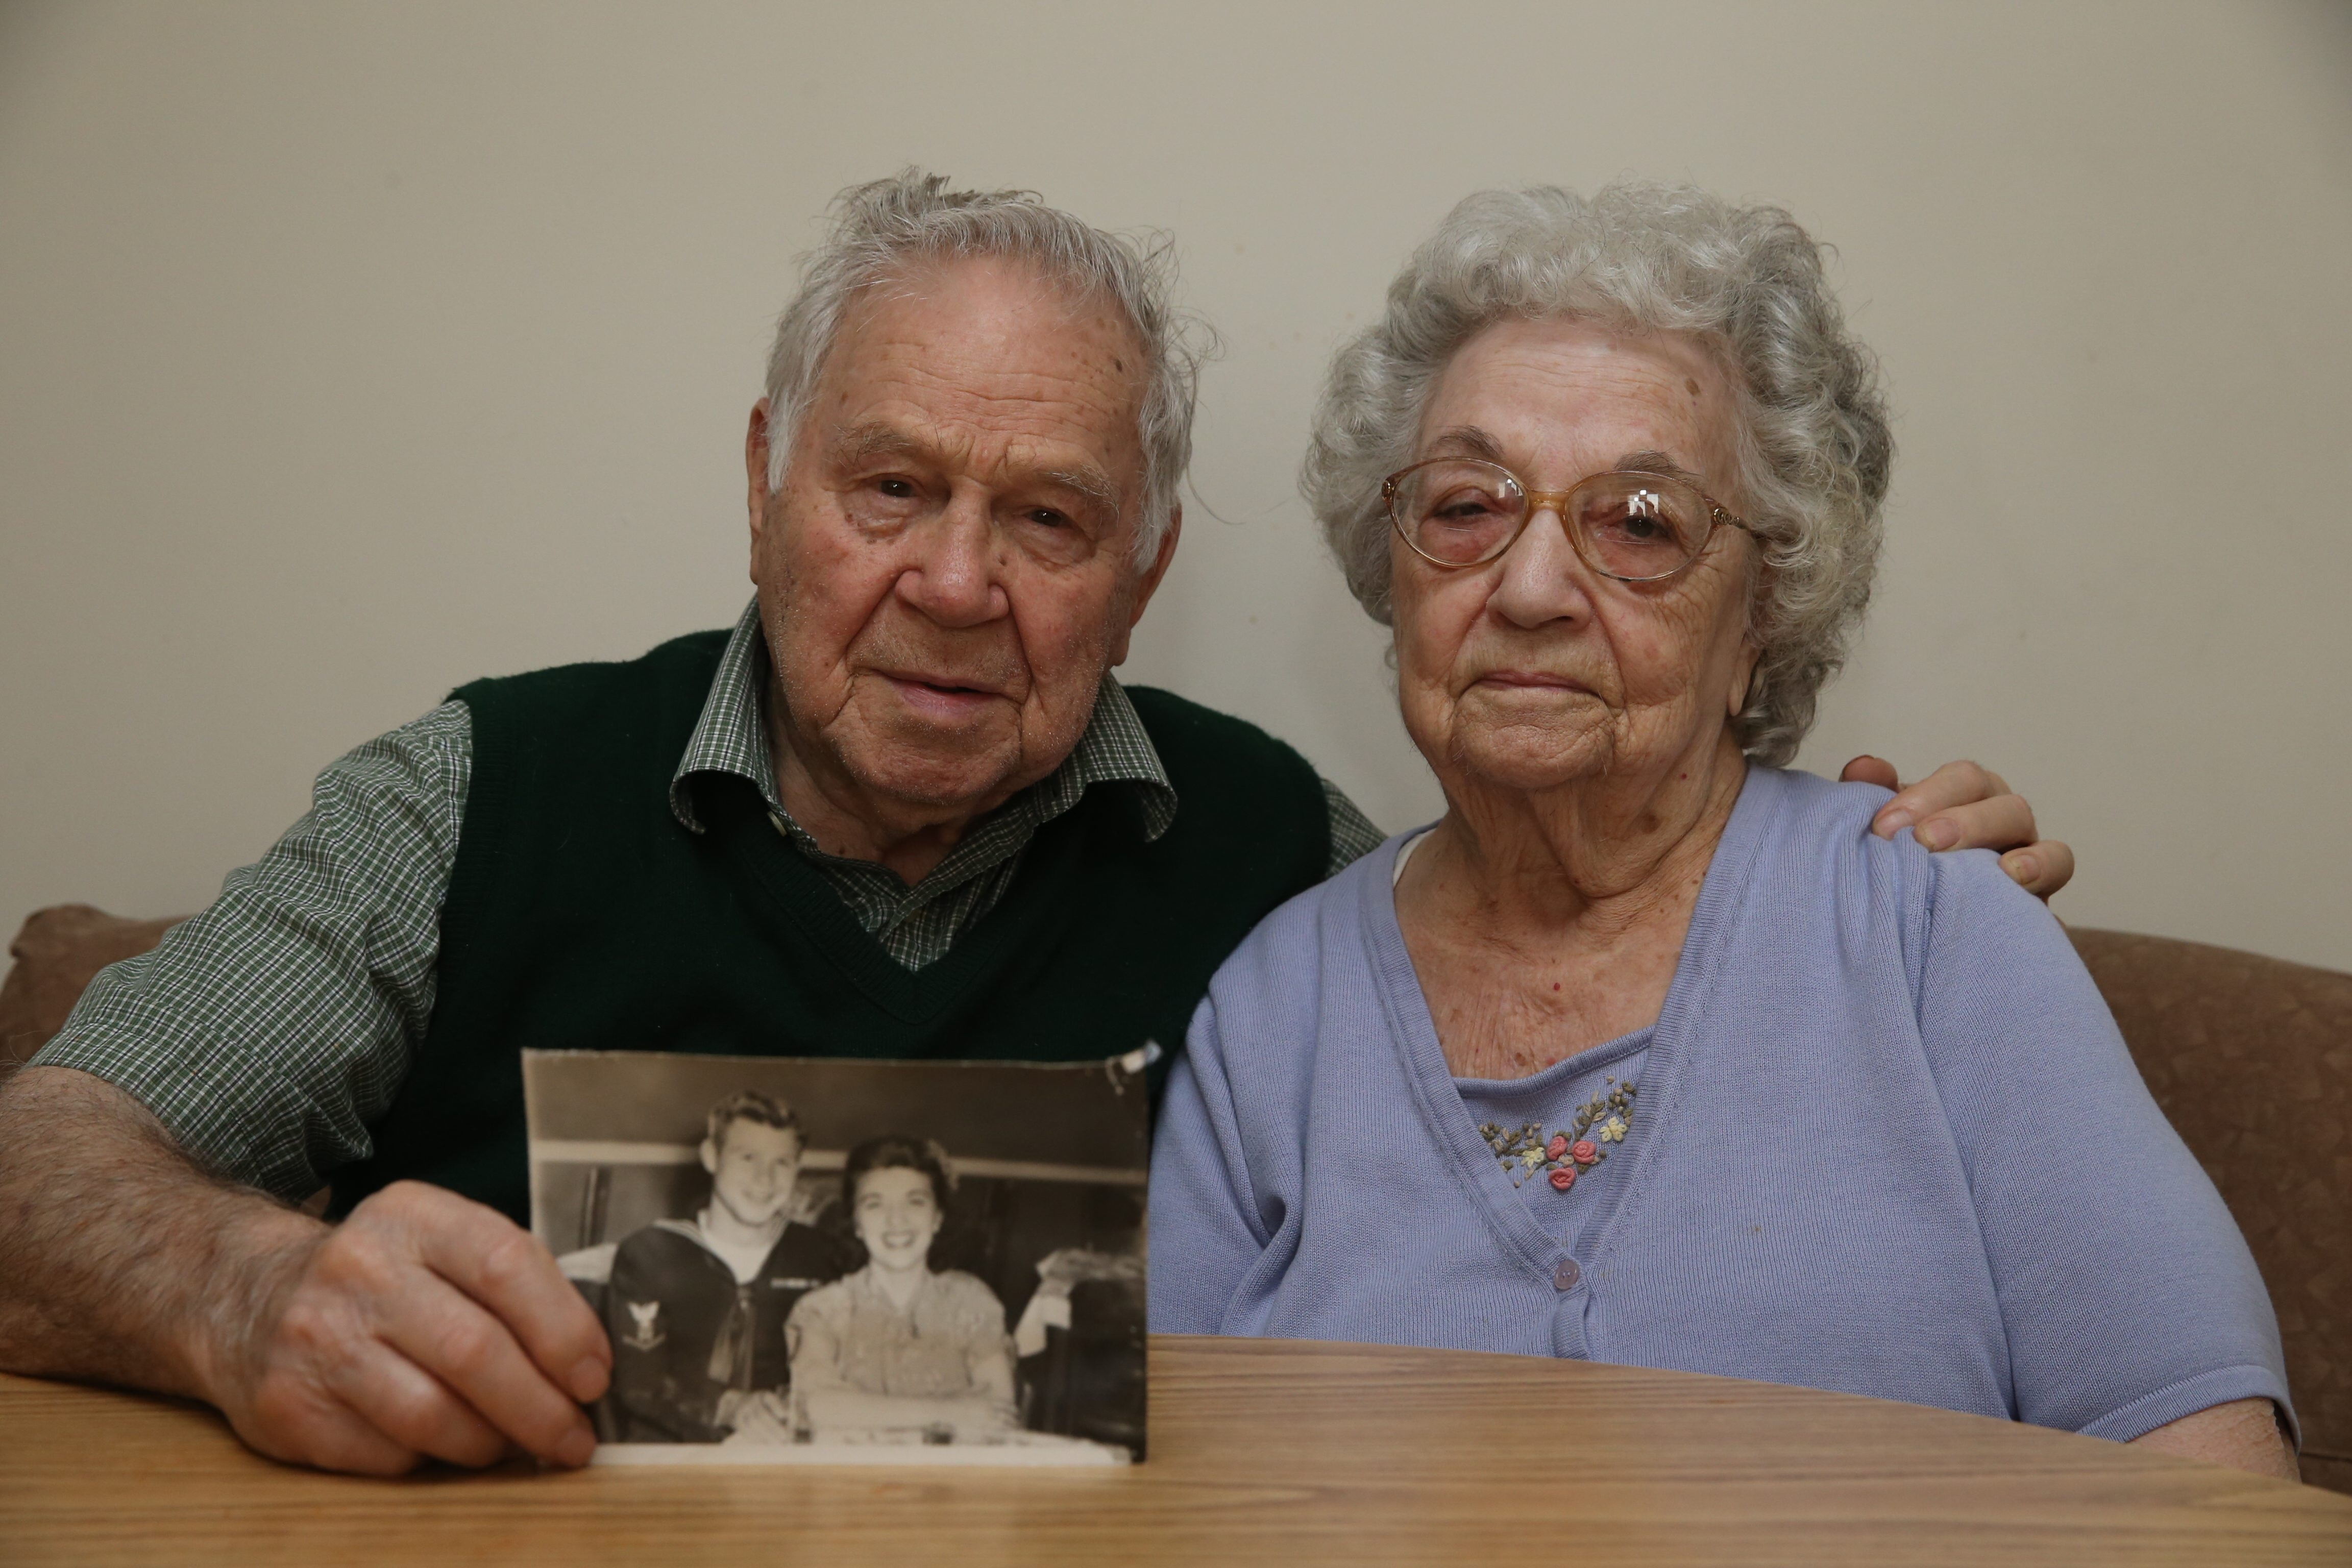 Photo of Eugene Piccione, while he was still in the Navy, and his bride-to-be, Carmela Guzzino, brings back mem- ories for the couple, who have been married for 69 years.